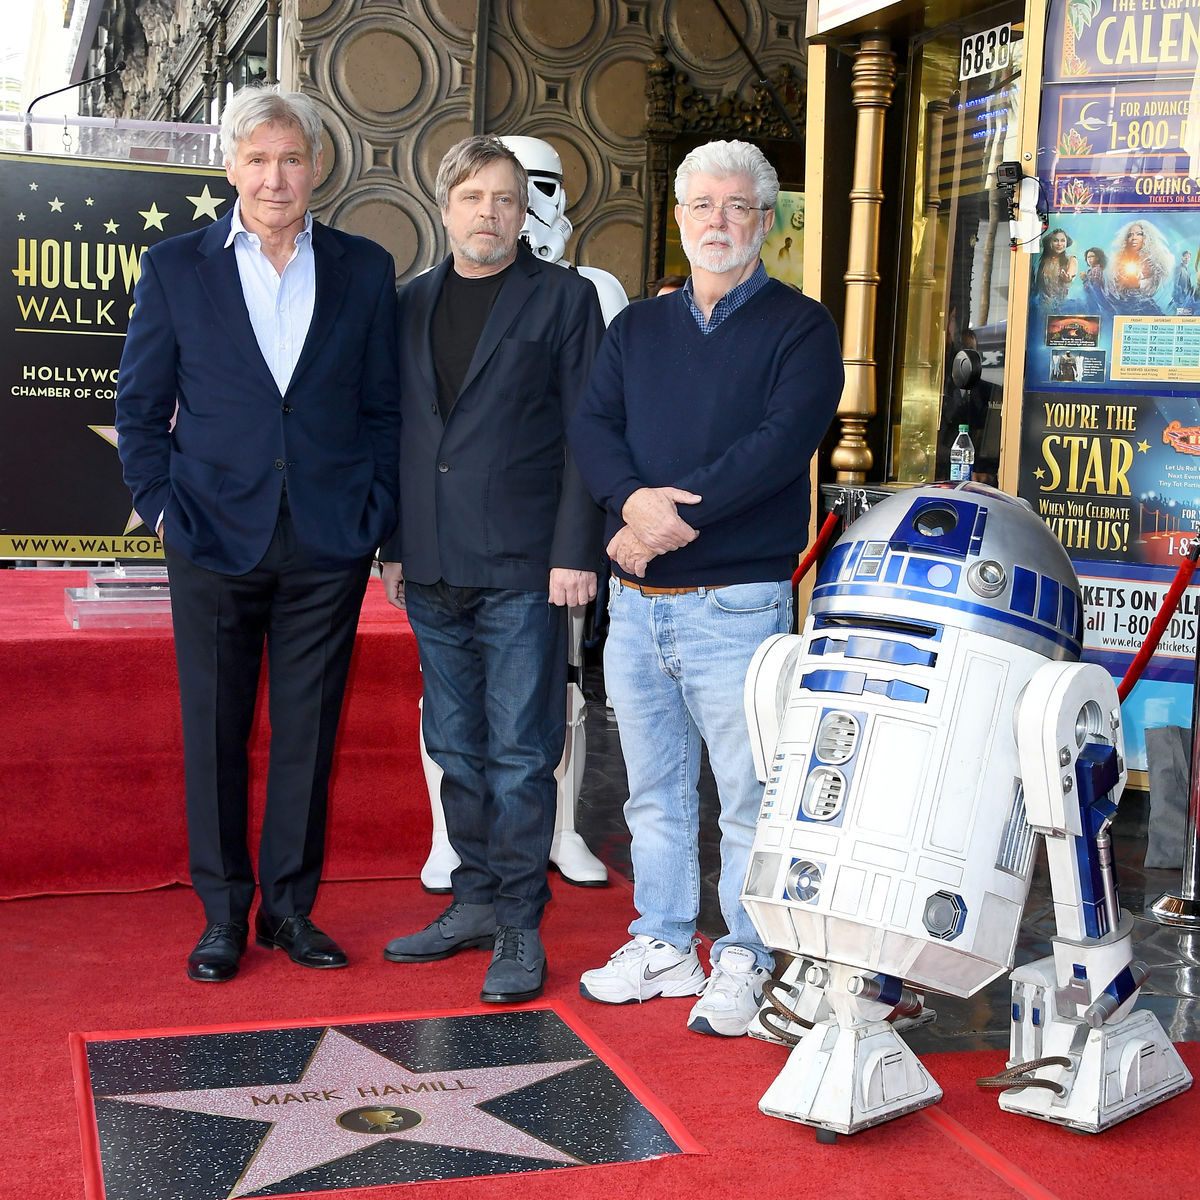 Mark Hamill Harrison Ford George Lucas Walk of Fame